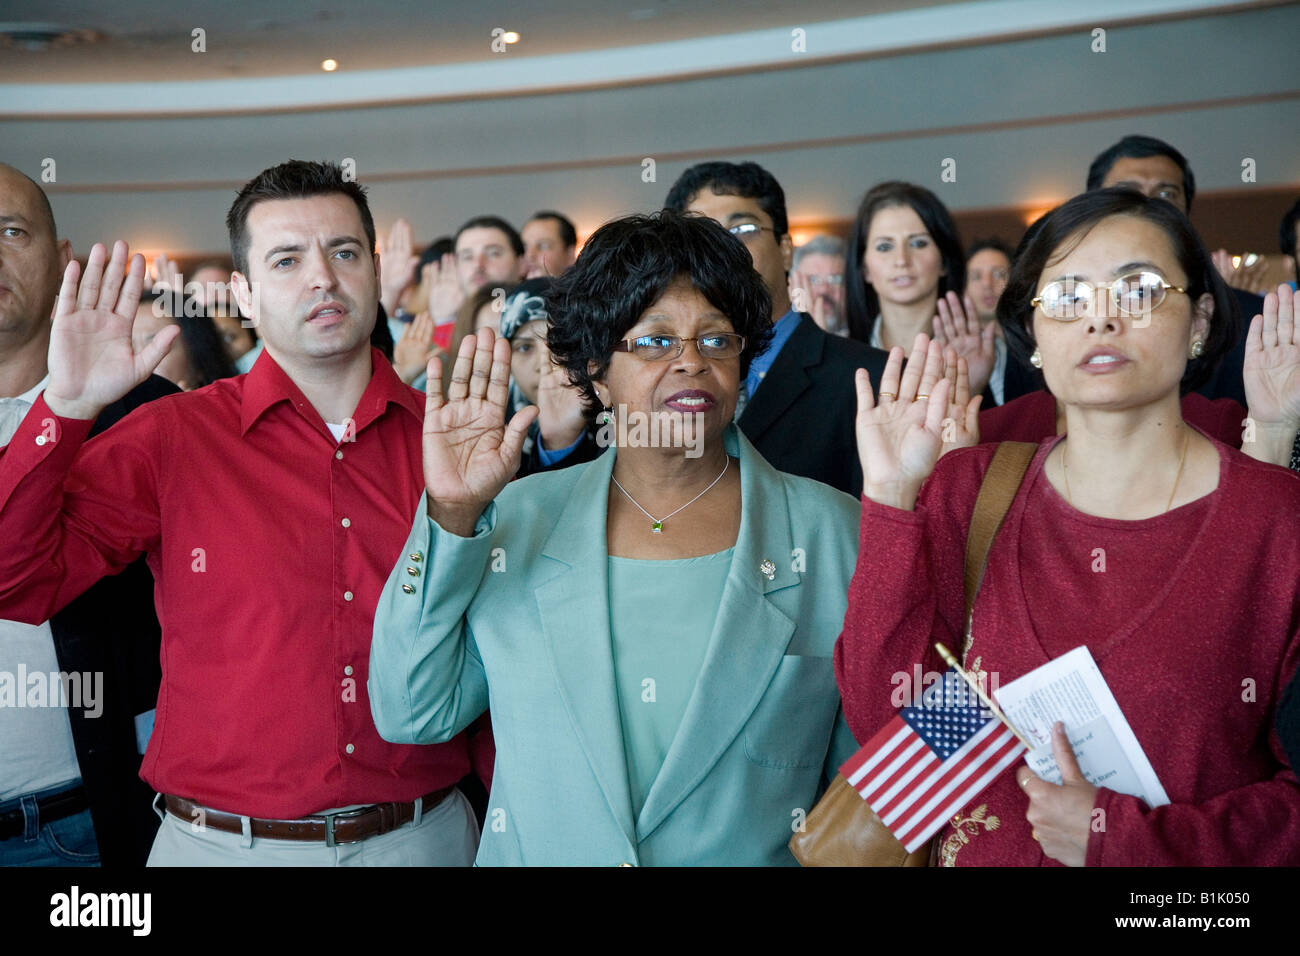 Oath Of Citizenship Ceremony Stock Photos & Oath Of Citizenship ...